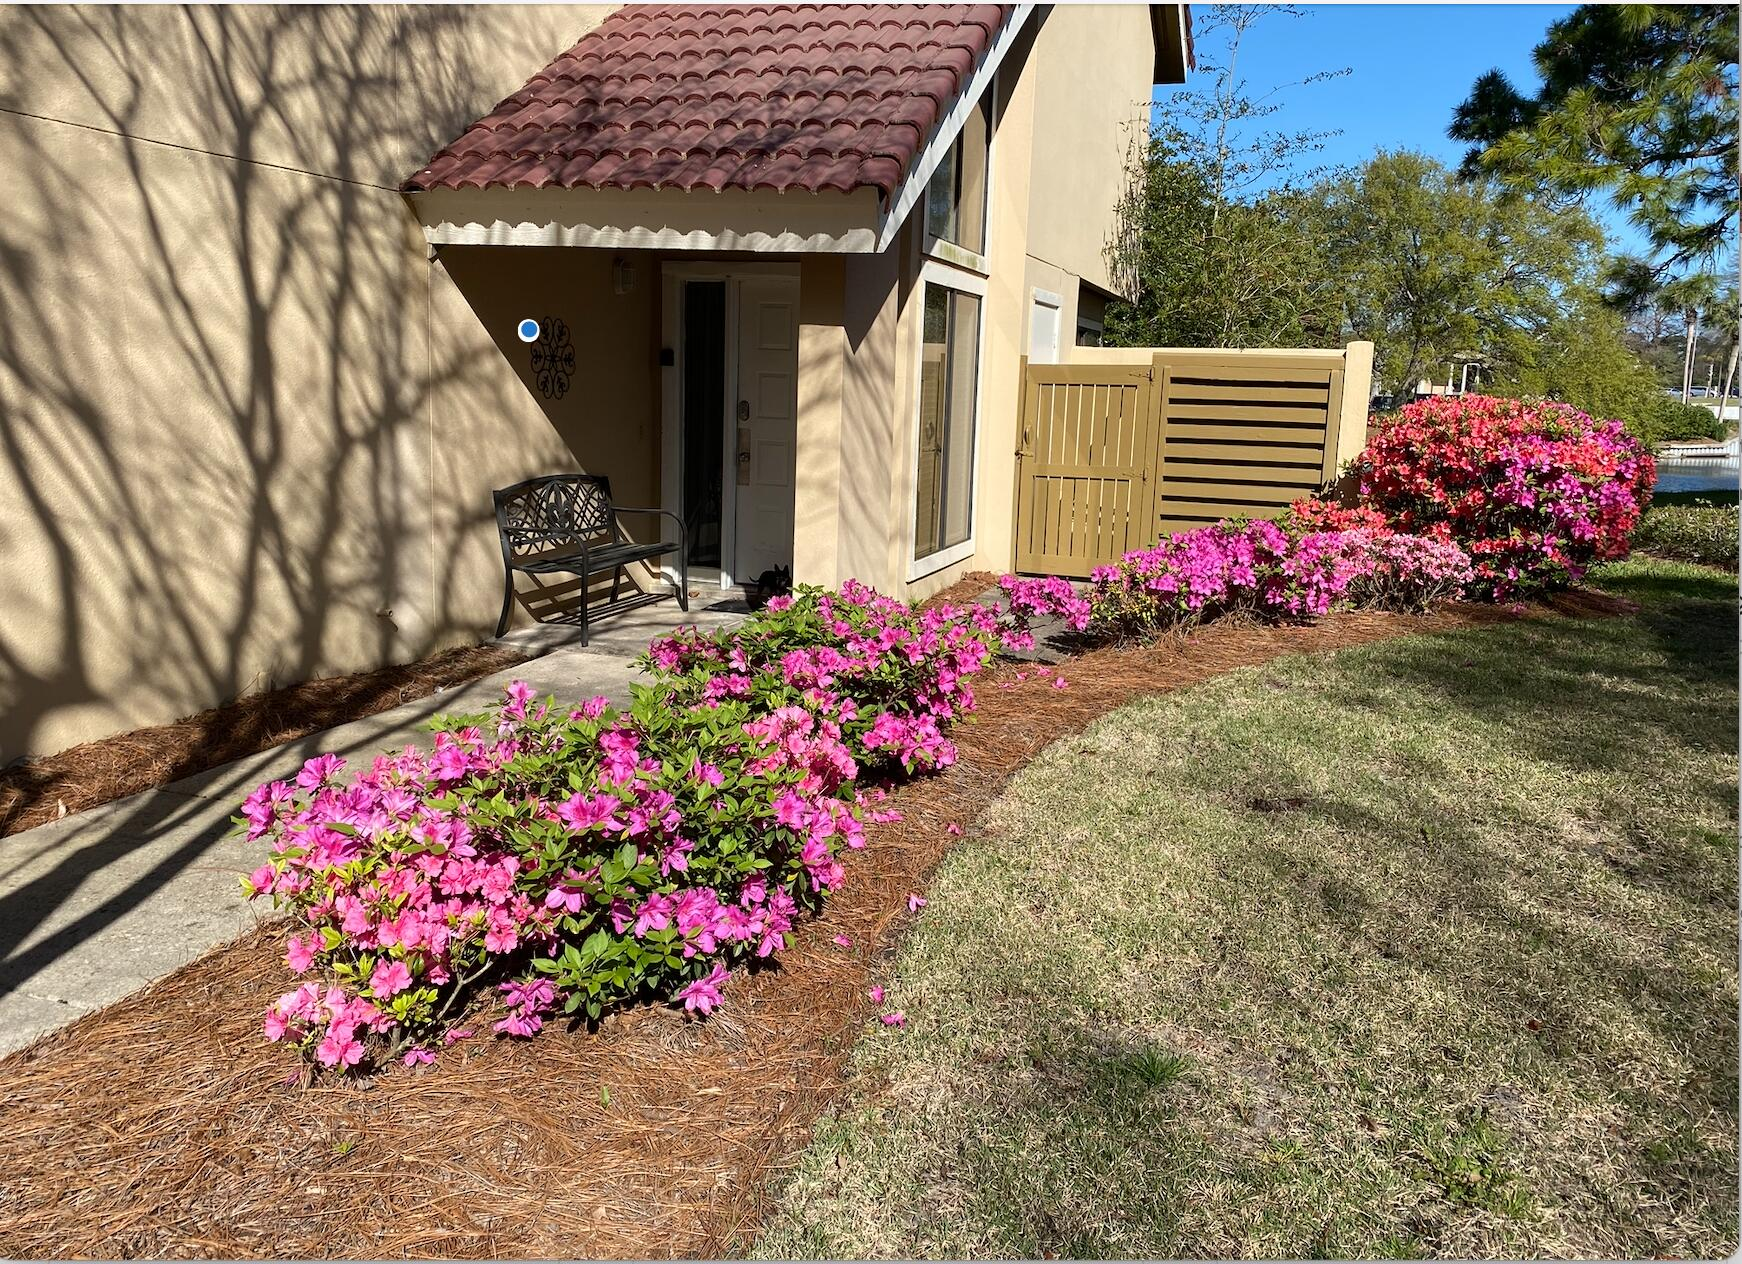 Rental numbers are off the chart with $65,000 in yearly gross rental income.  Unique and very desirable location.  Rarely do these 2/2 become available with bunk room and two master suites....one on the main level, with private covered patio.   Condo is open, spacious and flooded with light.  Relax on your back patio overlooking the lake or take advantage of the conveniently located neighborhood pool.  Nicely updated with huge attic and rental ready....fully furnished with GOLF CART INCLUDED!!!!